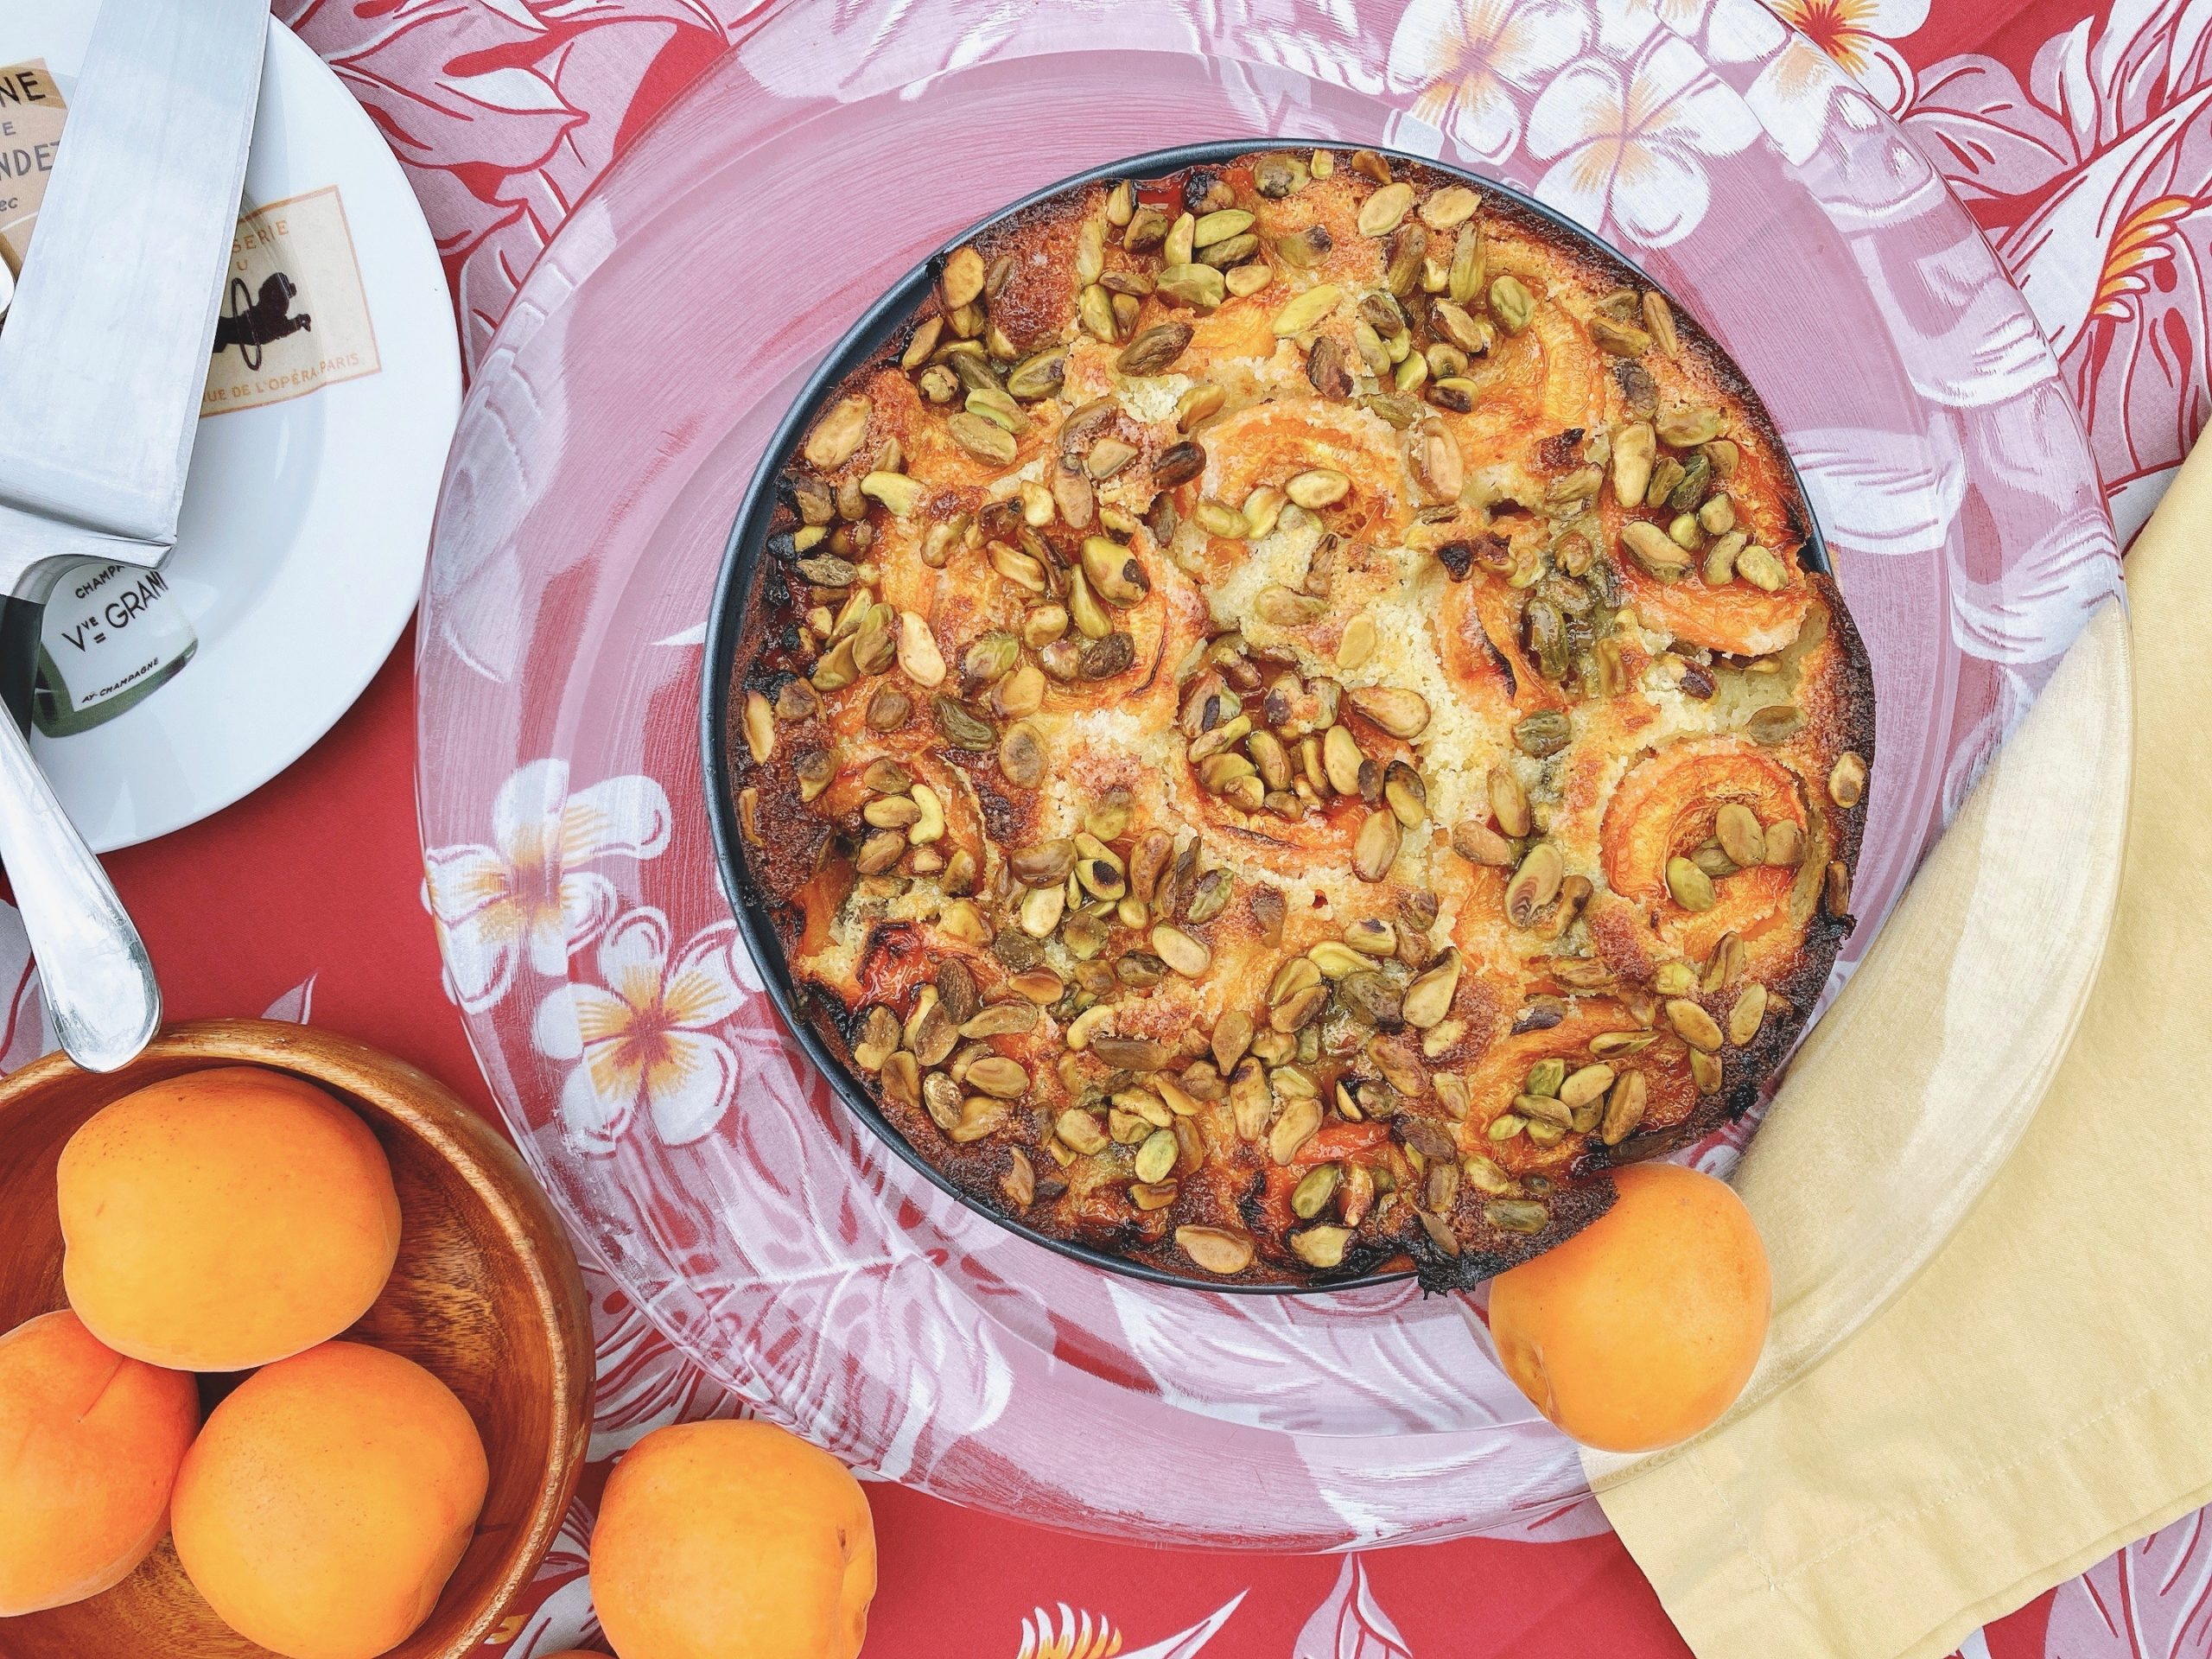 Overhead shot of Apricot Pistachio Cake in baking pan ready to serve